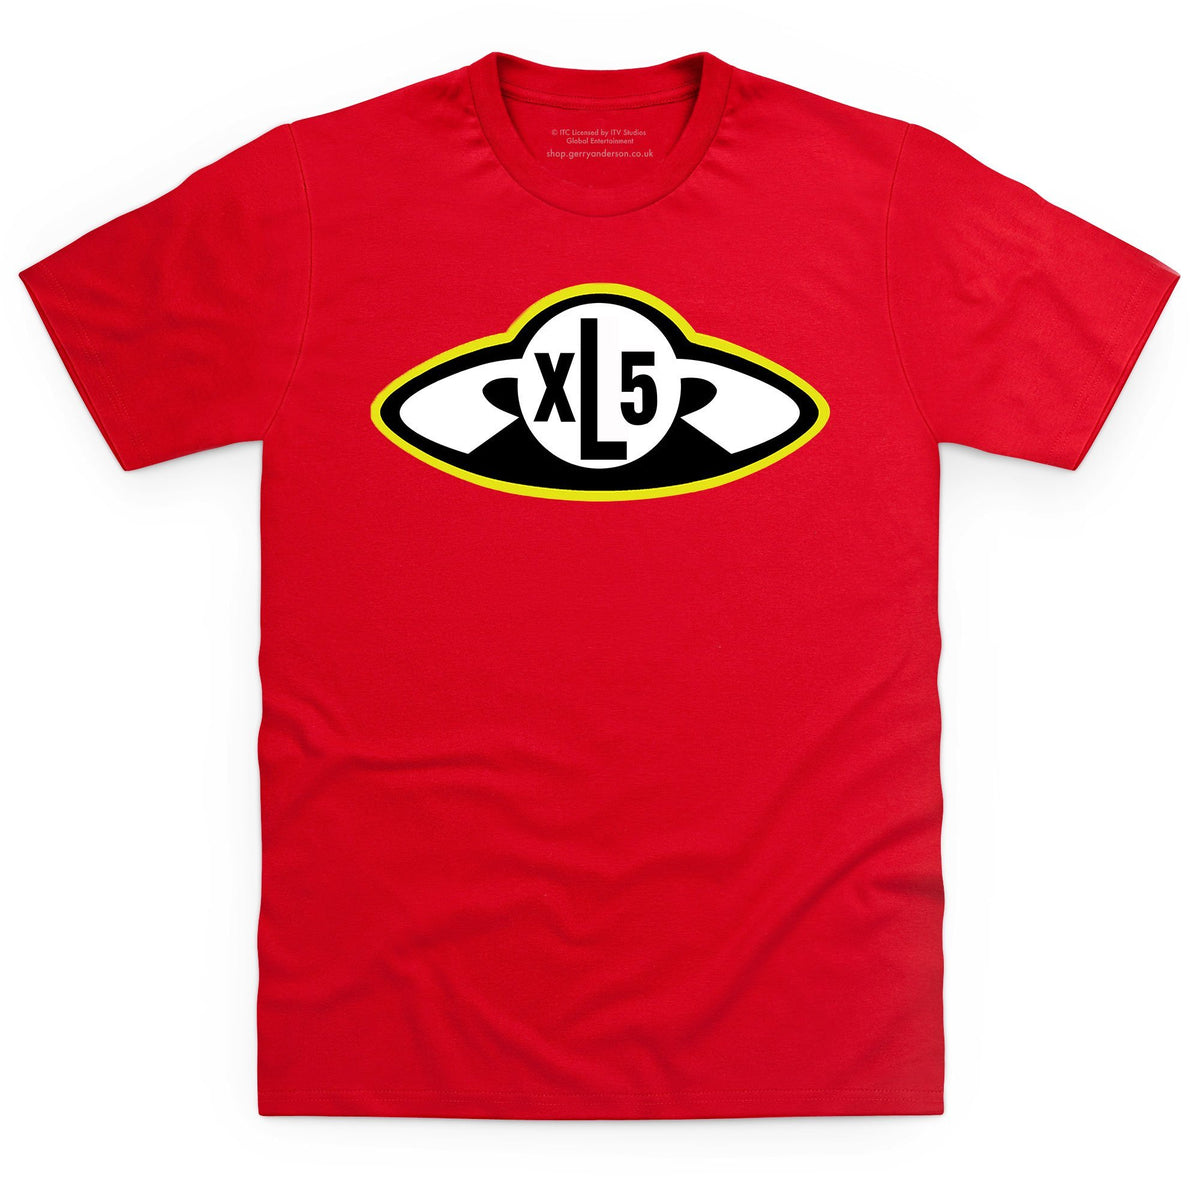 Fireball XL5 Badge Men's T-Shirt [Official & Exclusive] - The Gerry Anderson Store